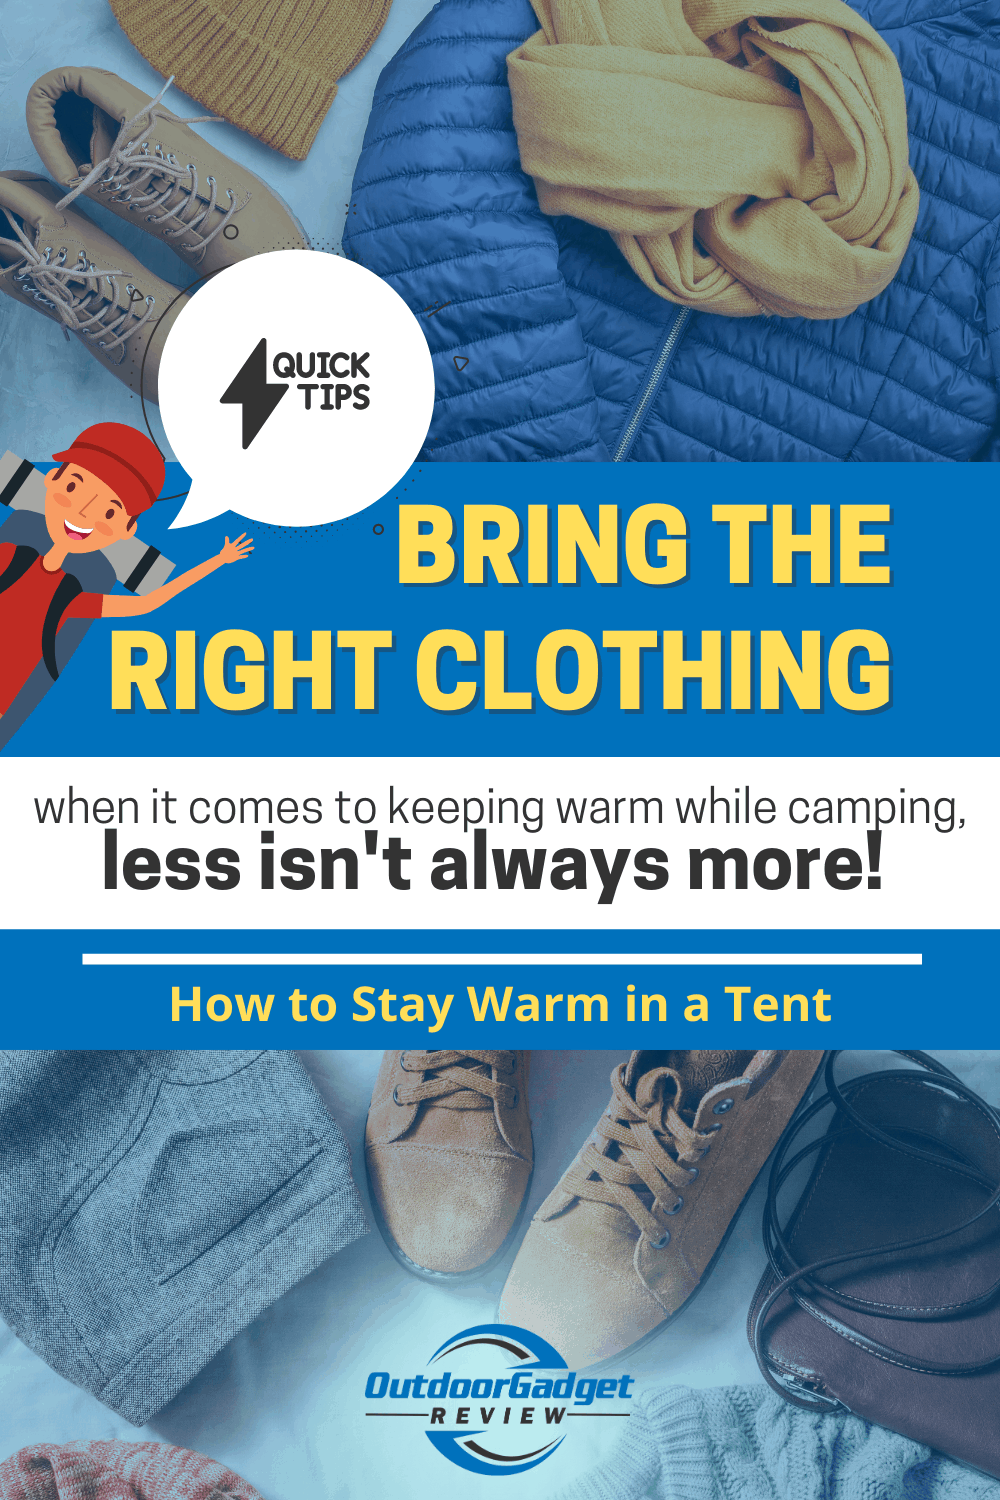 HOW TO STAY WARM IN A TENT